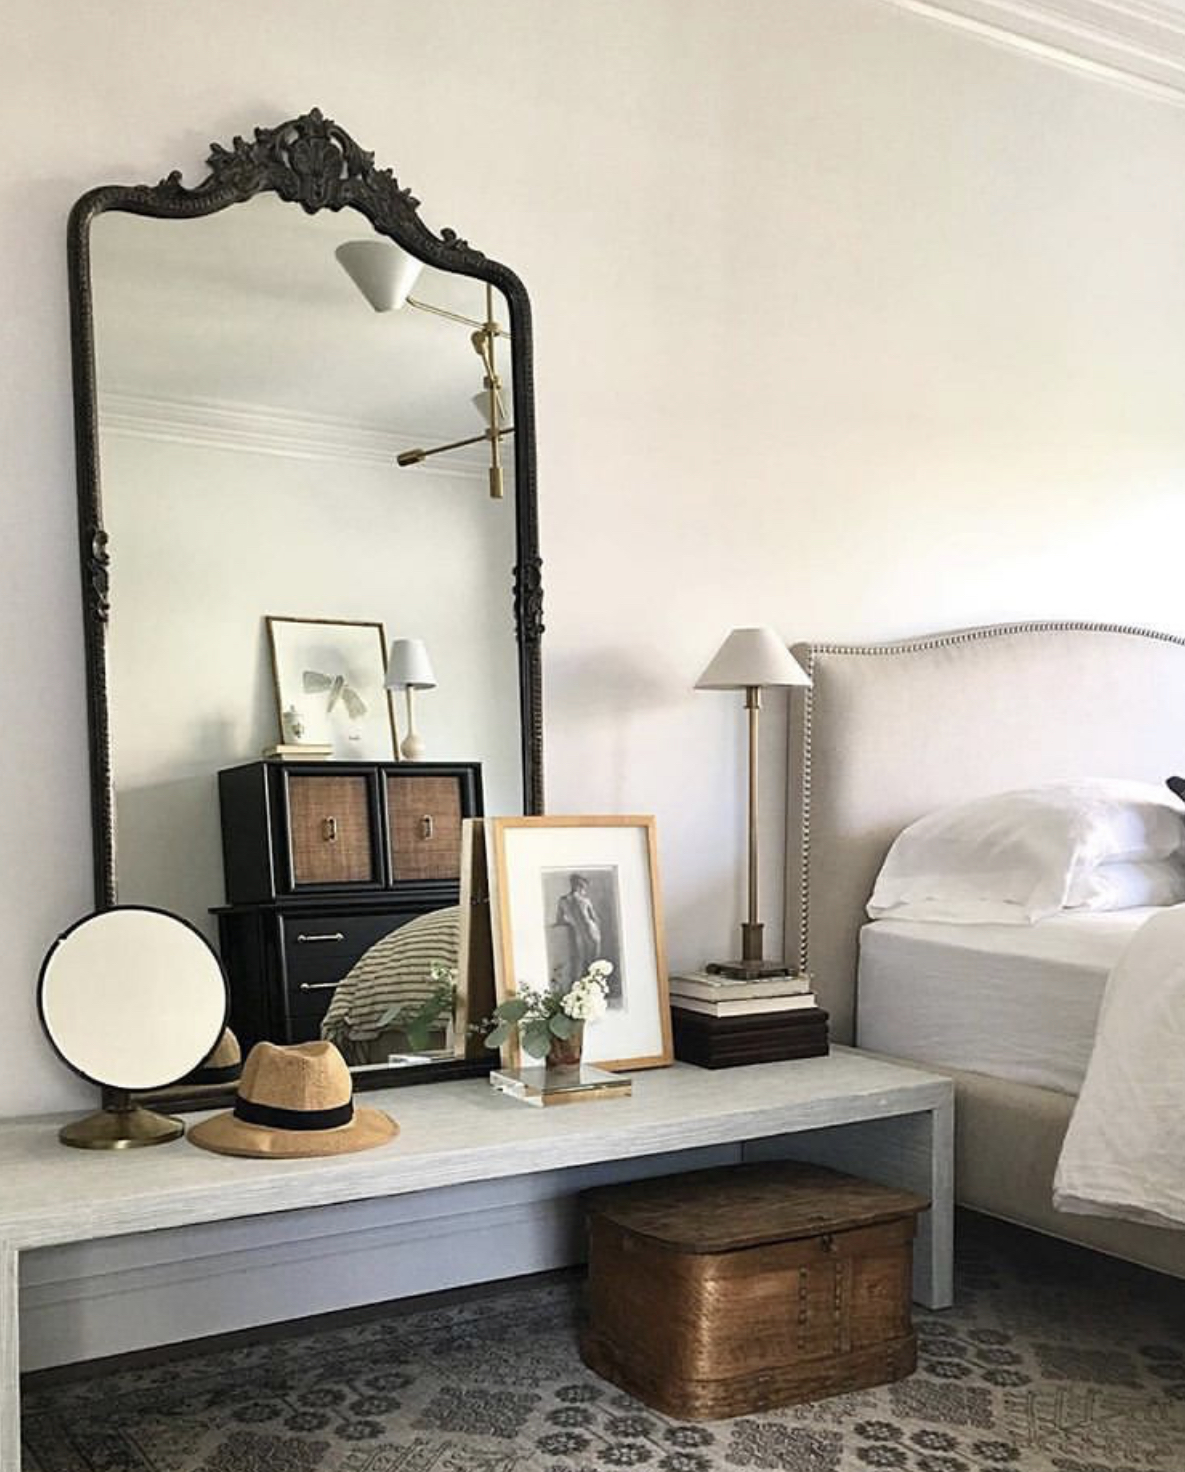 Bedroom Decoration ideas and tips